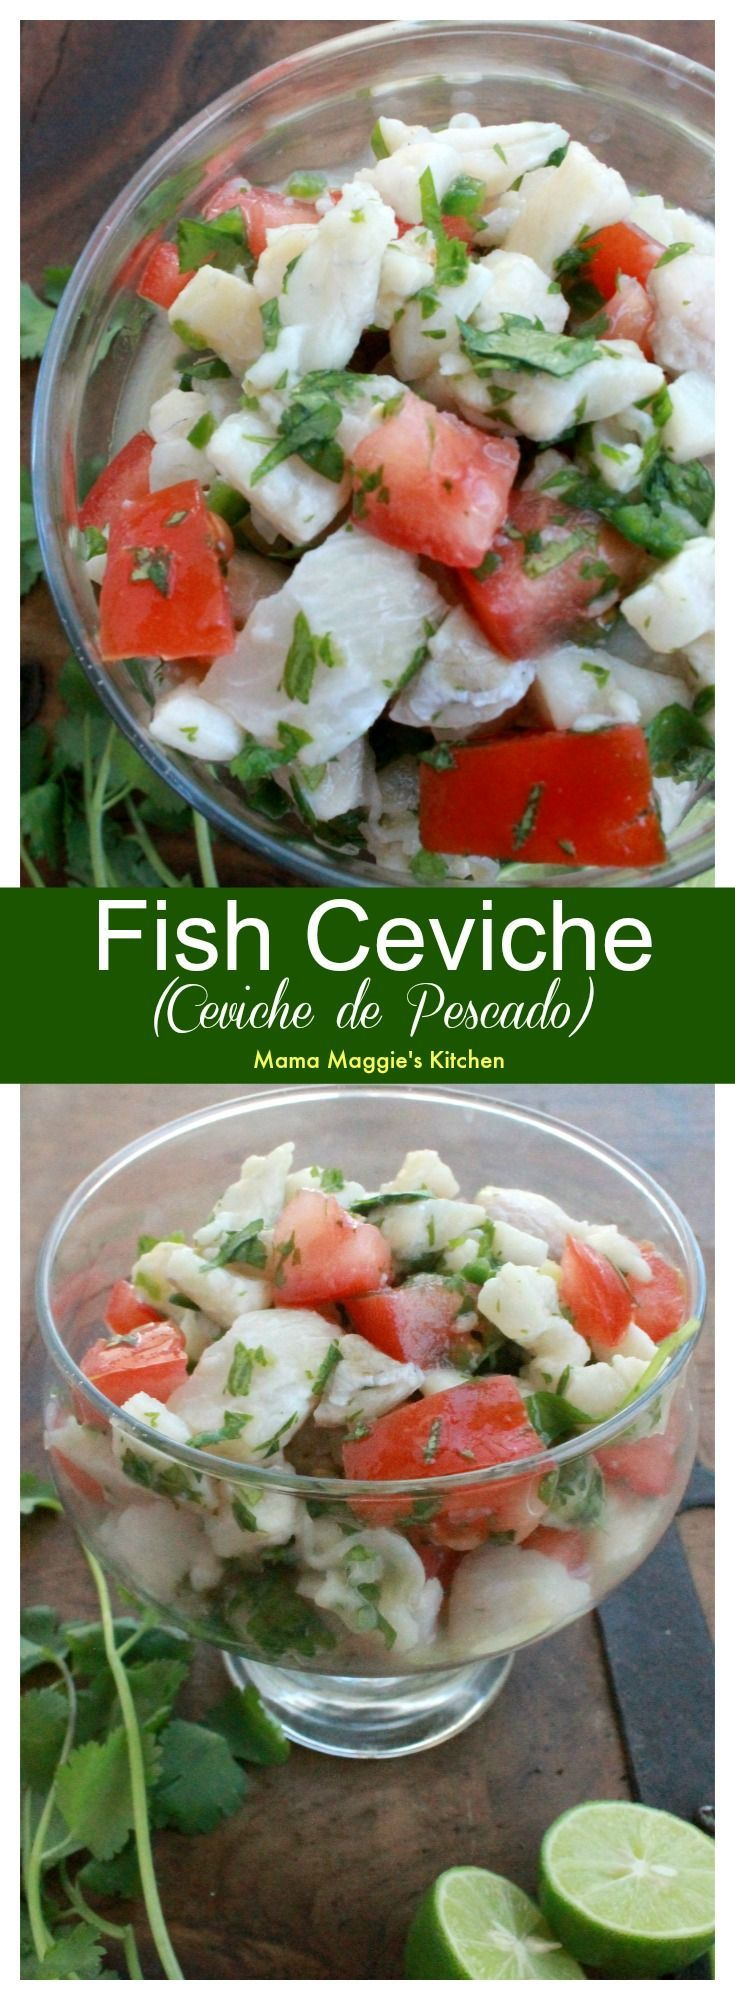 Fish Ceviche, or Ceviche de Pescado, is the perfect warm weather food. You never feel heavy after you eat it. It's full of all my favorite Mexican flavors. by Mama Maggie's Kitchen #ceviche #mexicanfood #fish